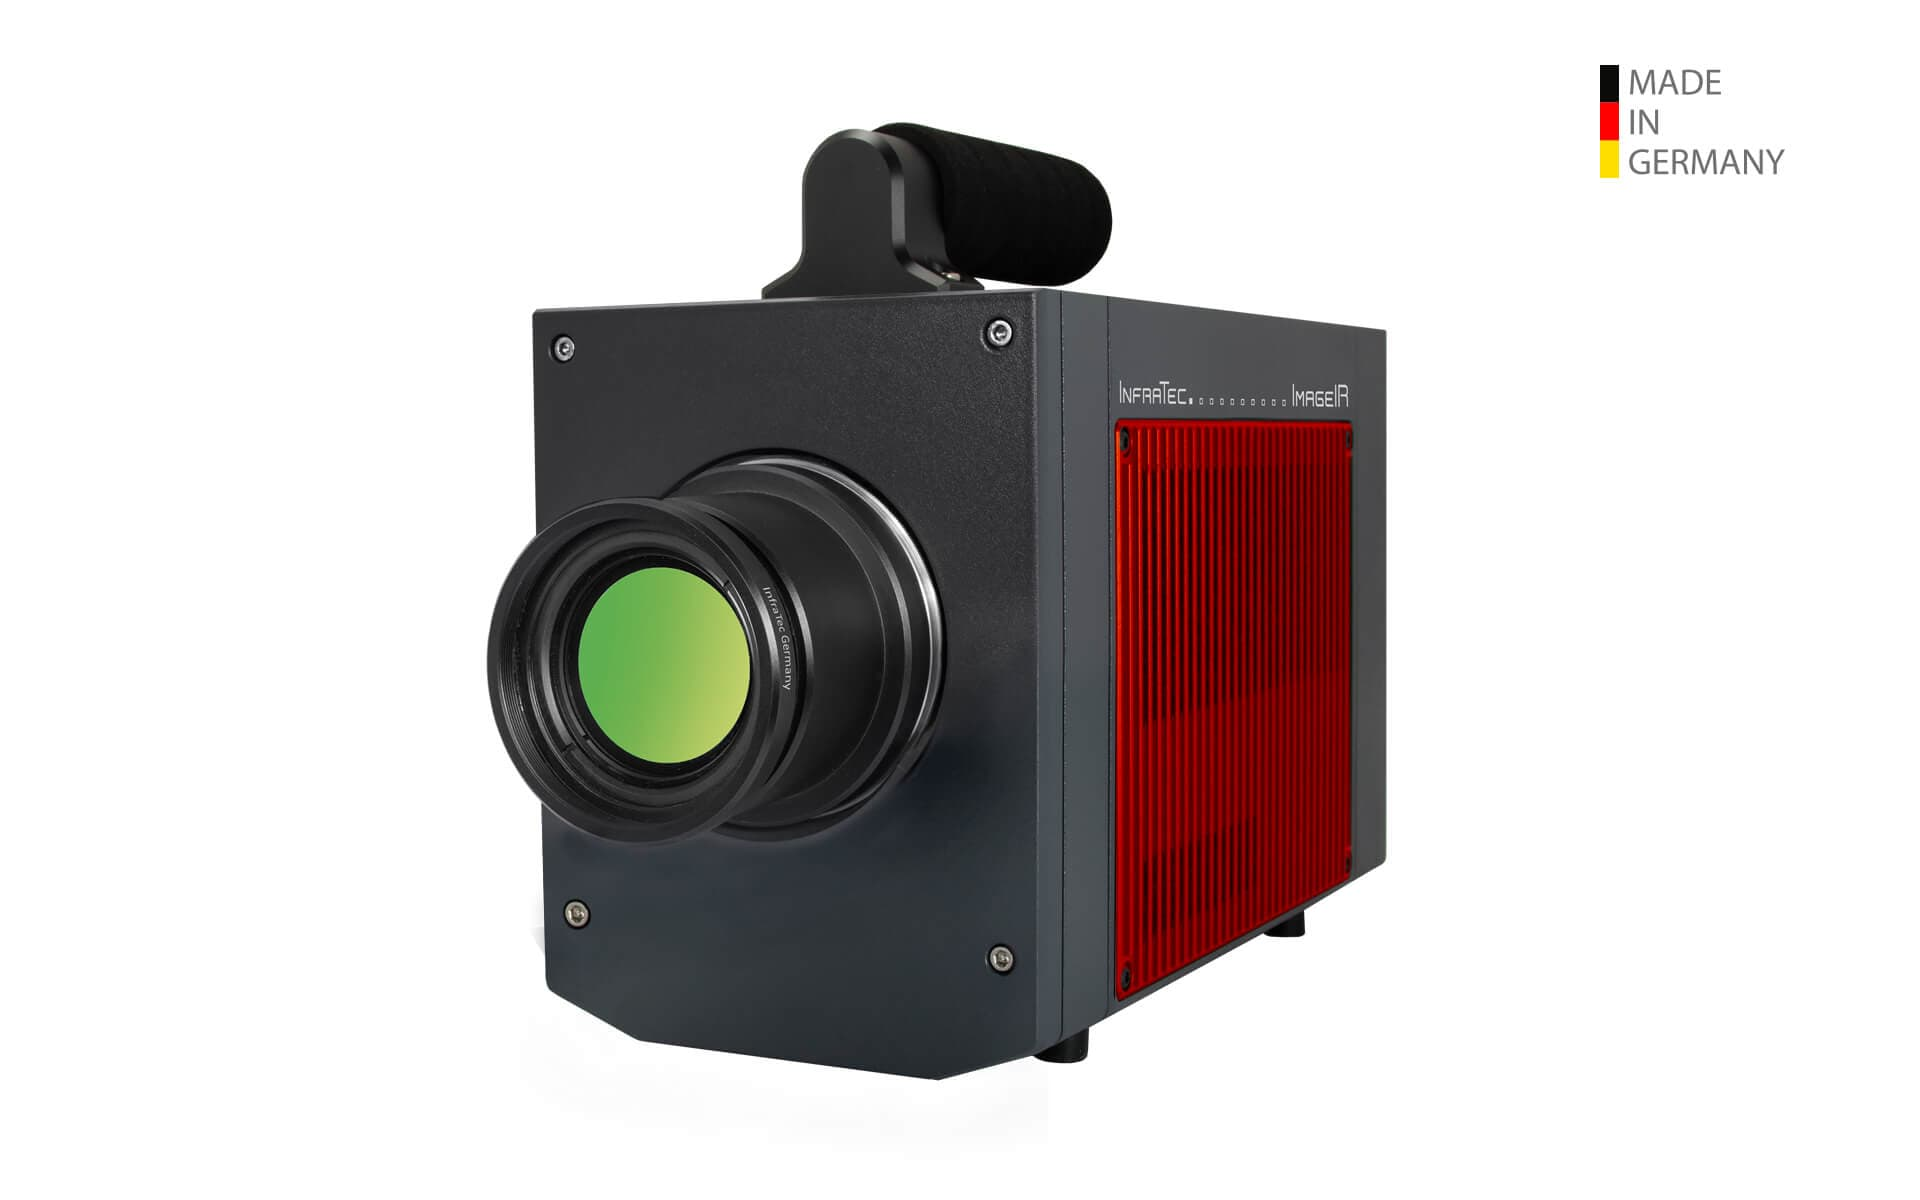 Infrared camera ImageIR® 9400 with thermographic software IRBIS® 3 from InfraTec